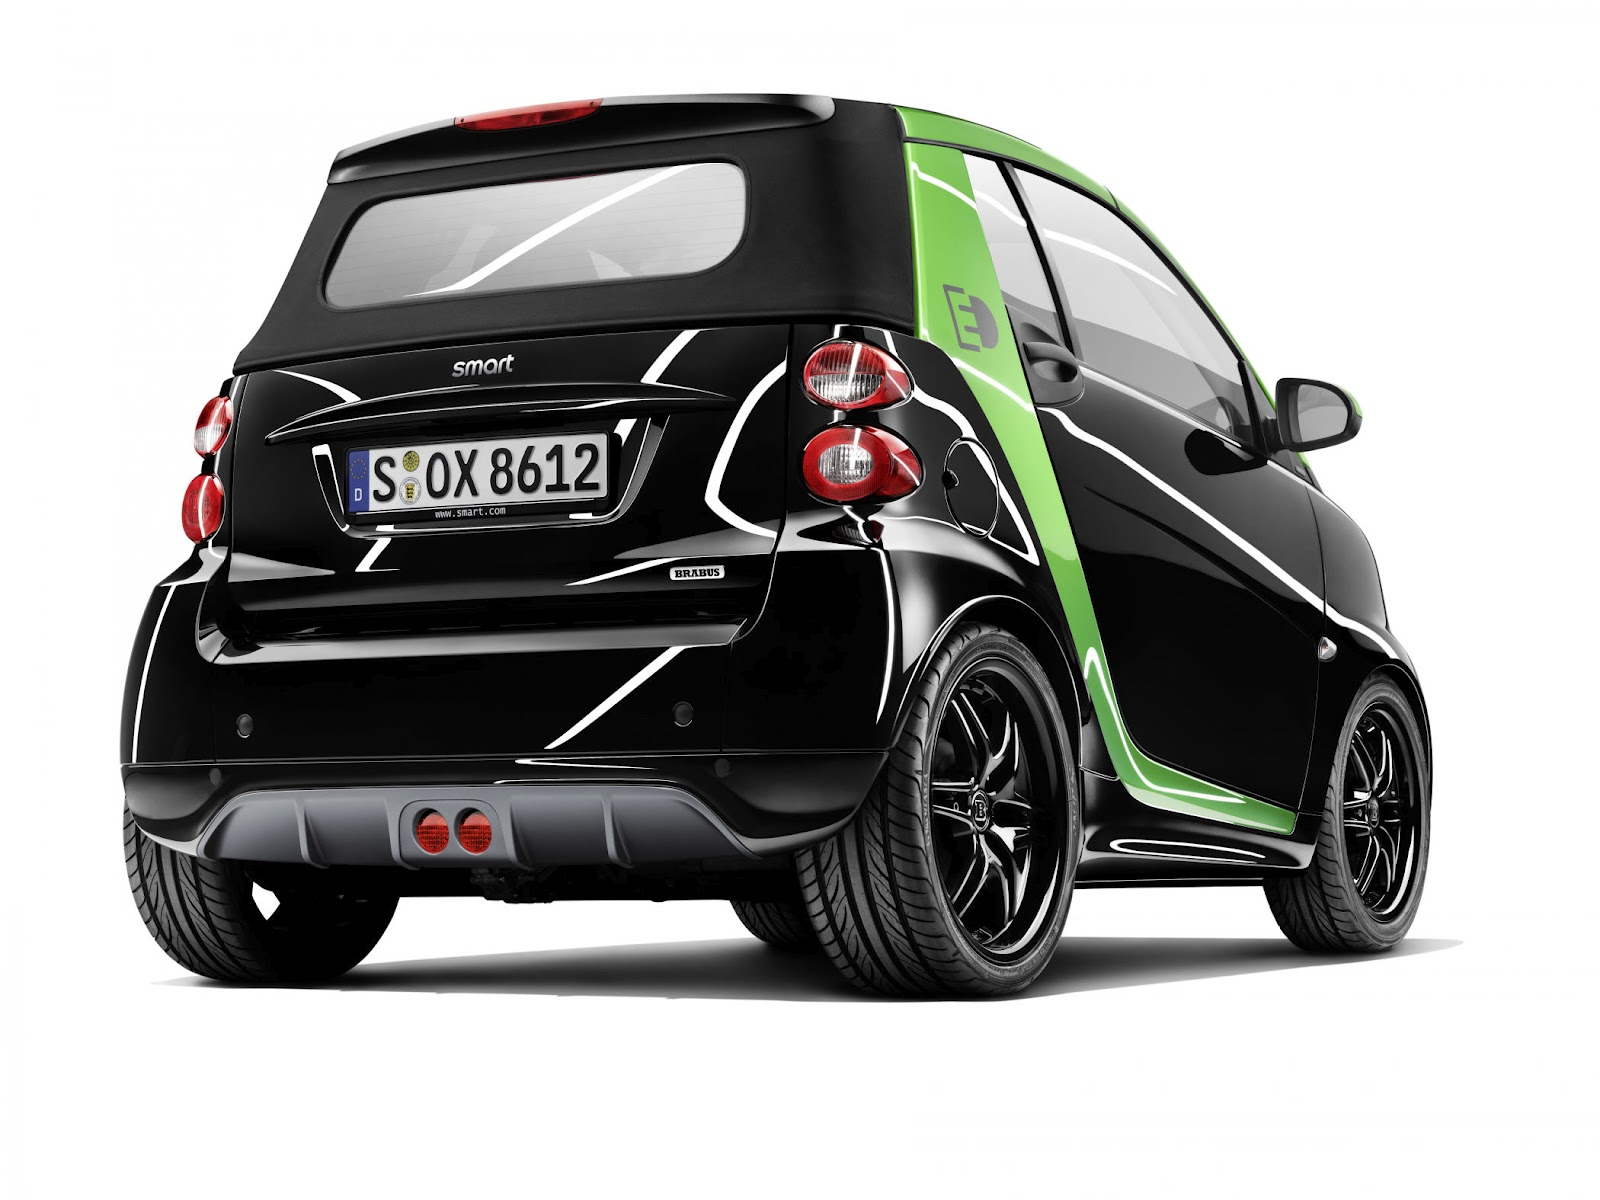 http://4.bp.blogspot.com/-wn70pRhXhCI/T-ALzUZ4-AI/AAAAAAAADSI/OtK7URBa_Xw/s1600/Smart+Fortwo+Electric+Drive+hd+Wallpapers+2012_1.jpg